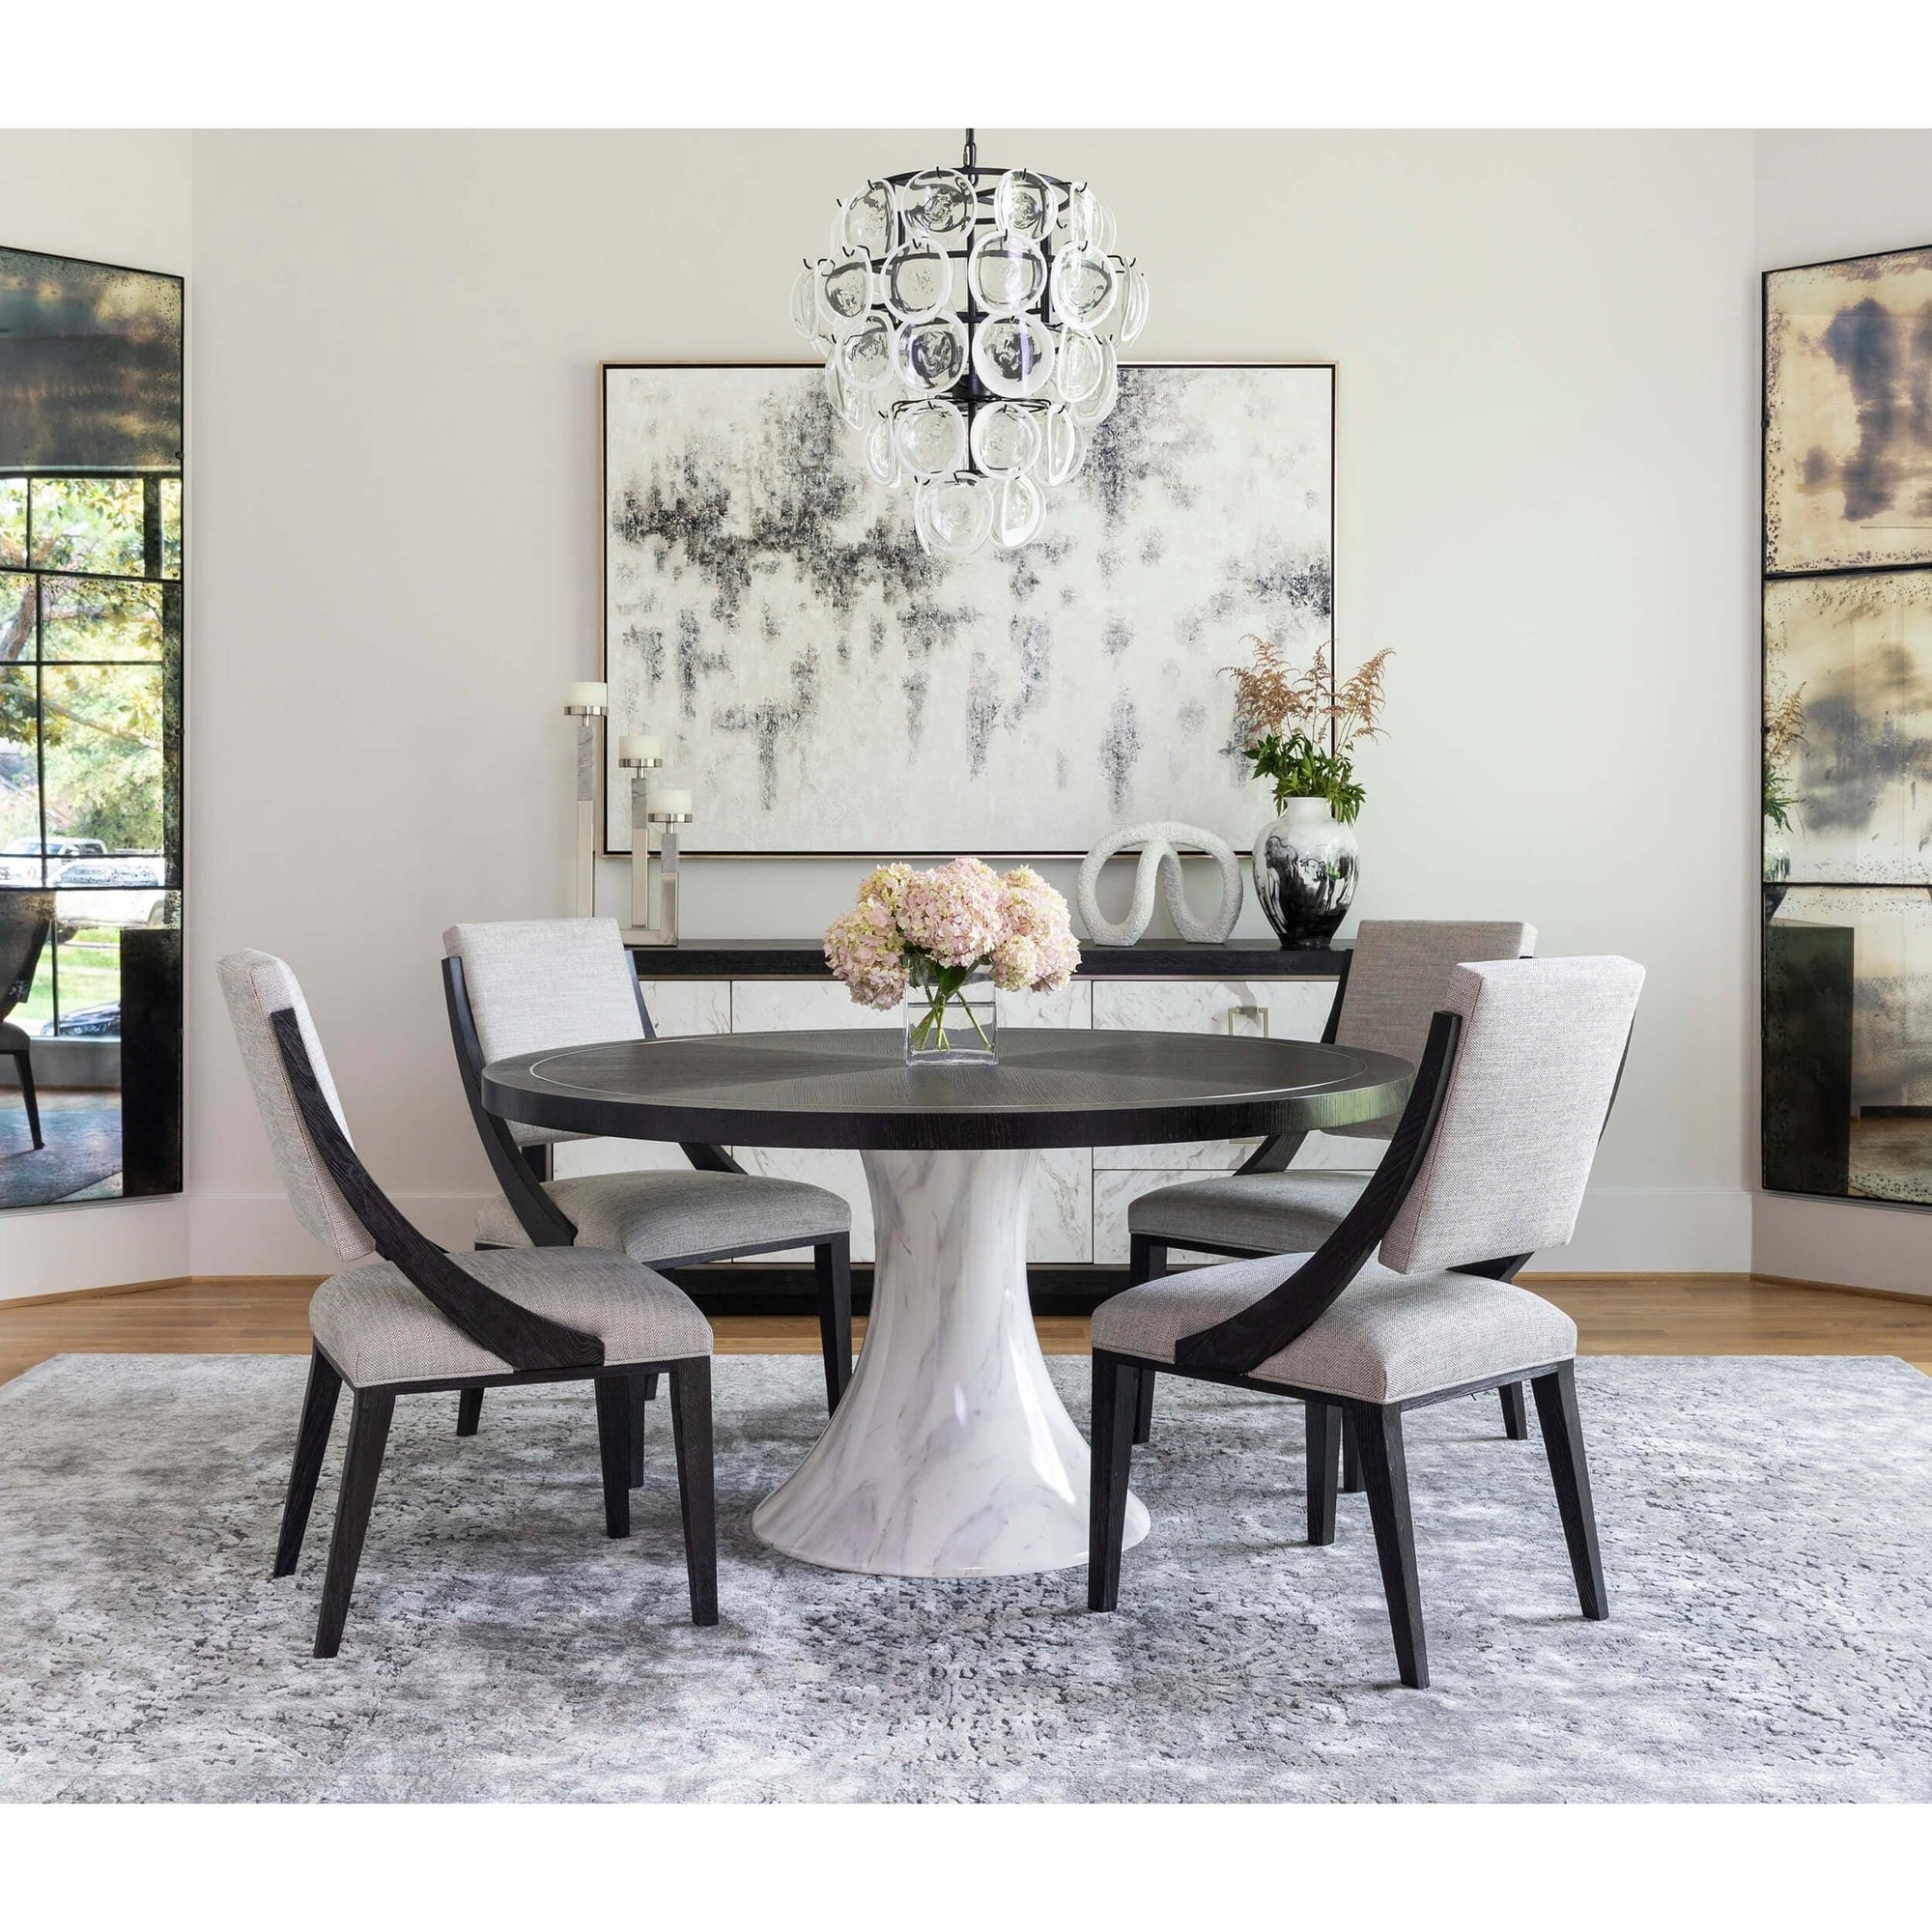 High Round Dining Table: Decorage Round Dining Table